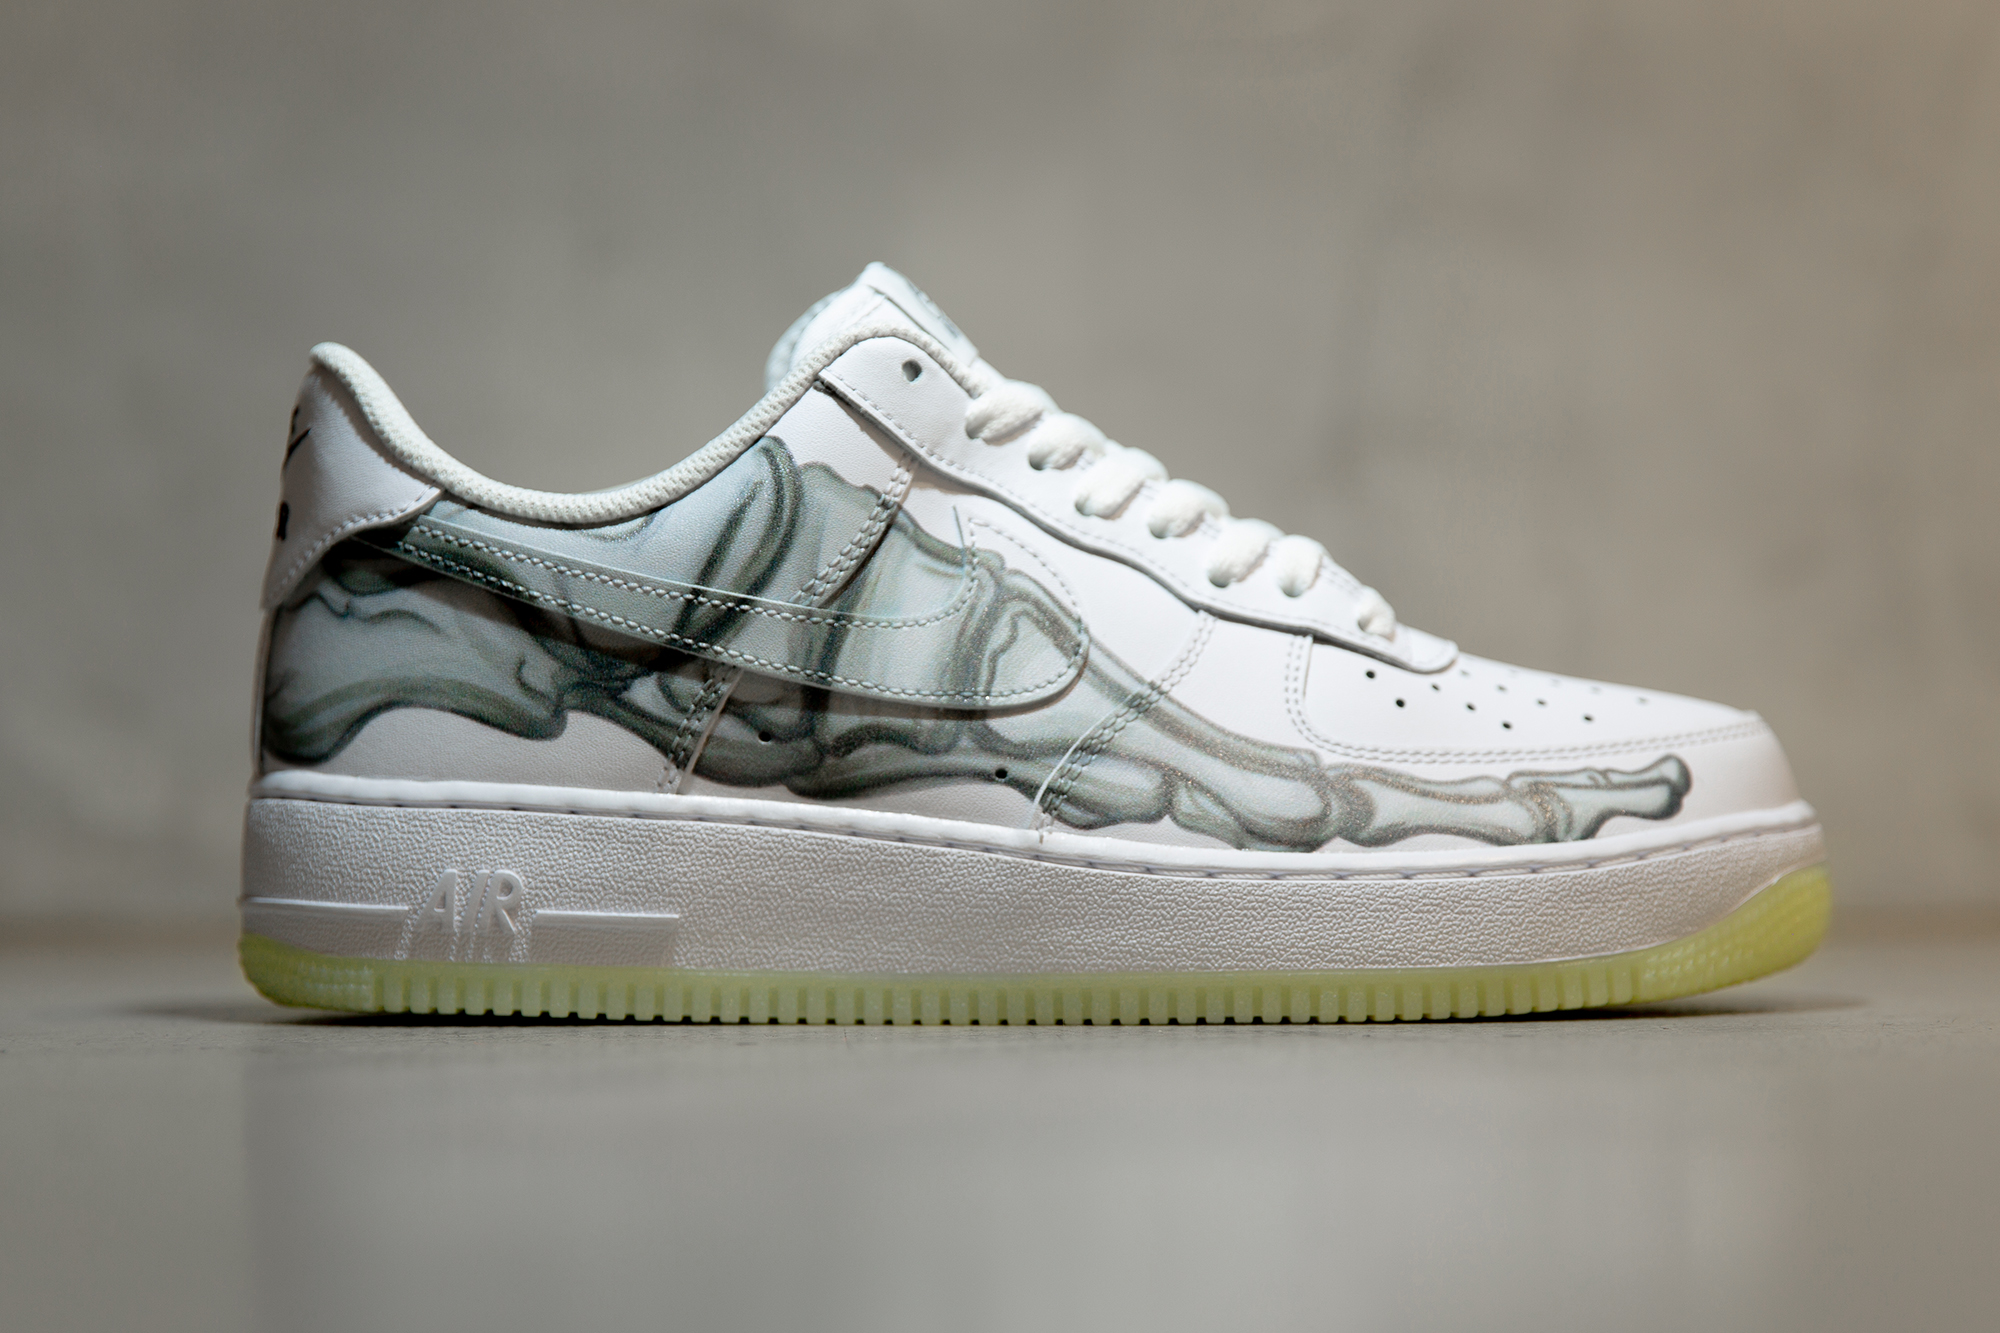 Nike and Puma Halloween Sneakers | Air Force 1 Skeleton Release